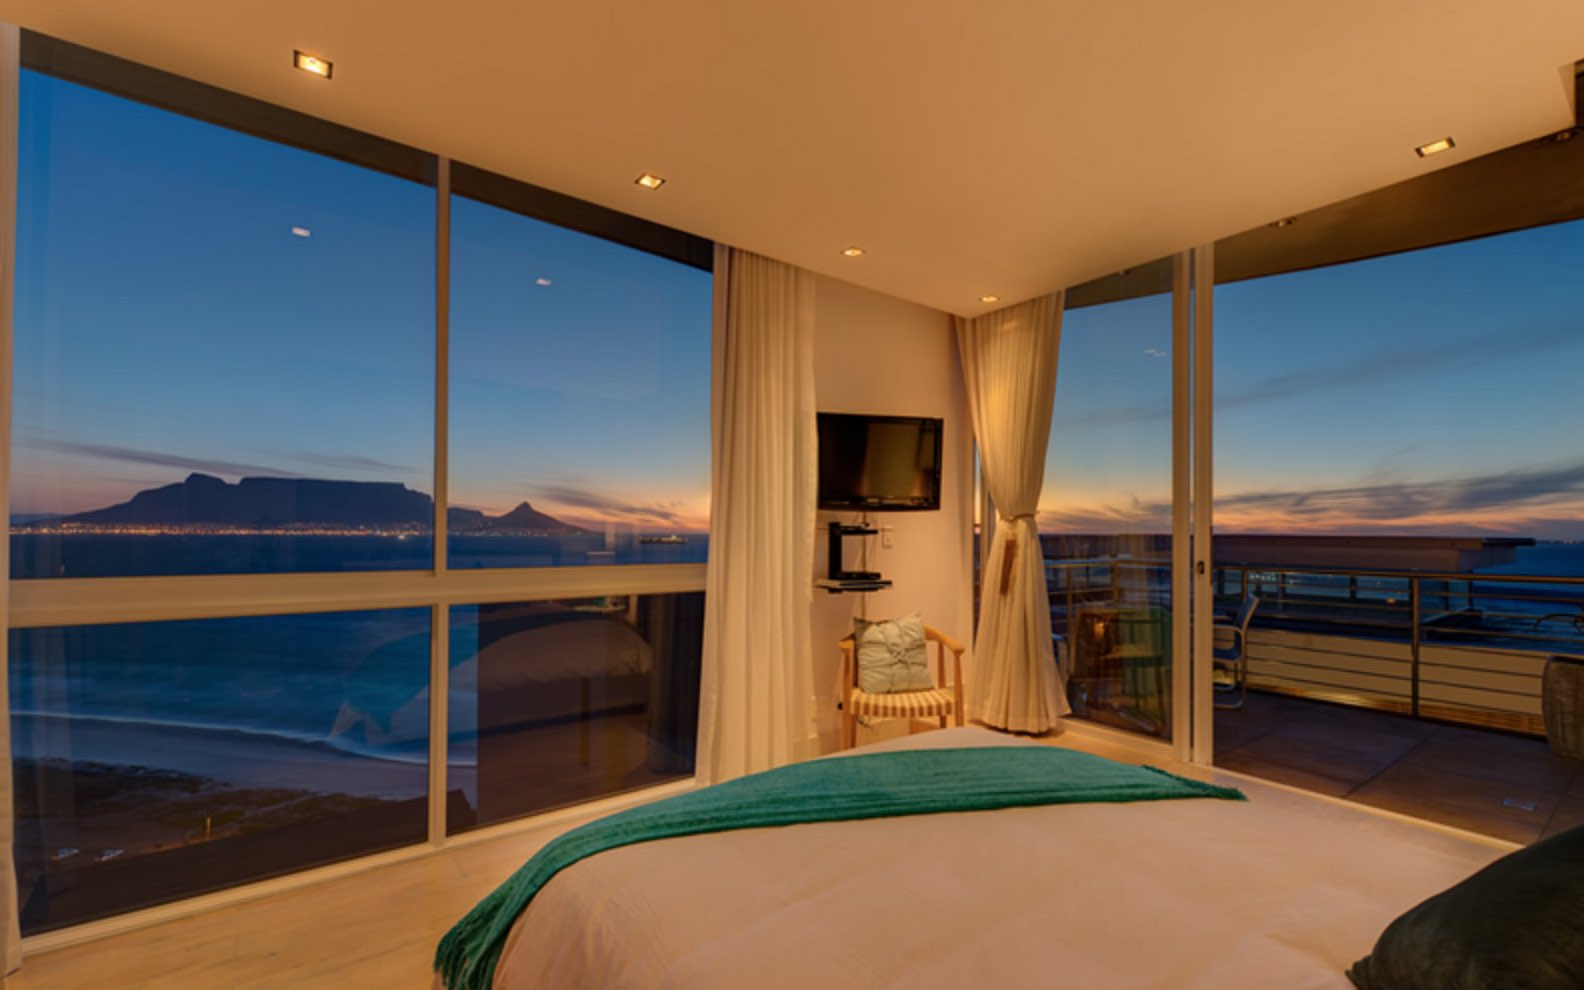 Penthouse on Beach - Luxury Hotels in Cape Town - 6.jpg